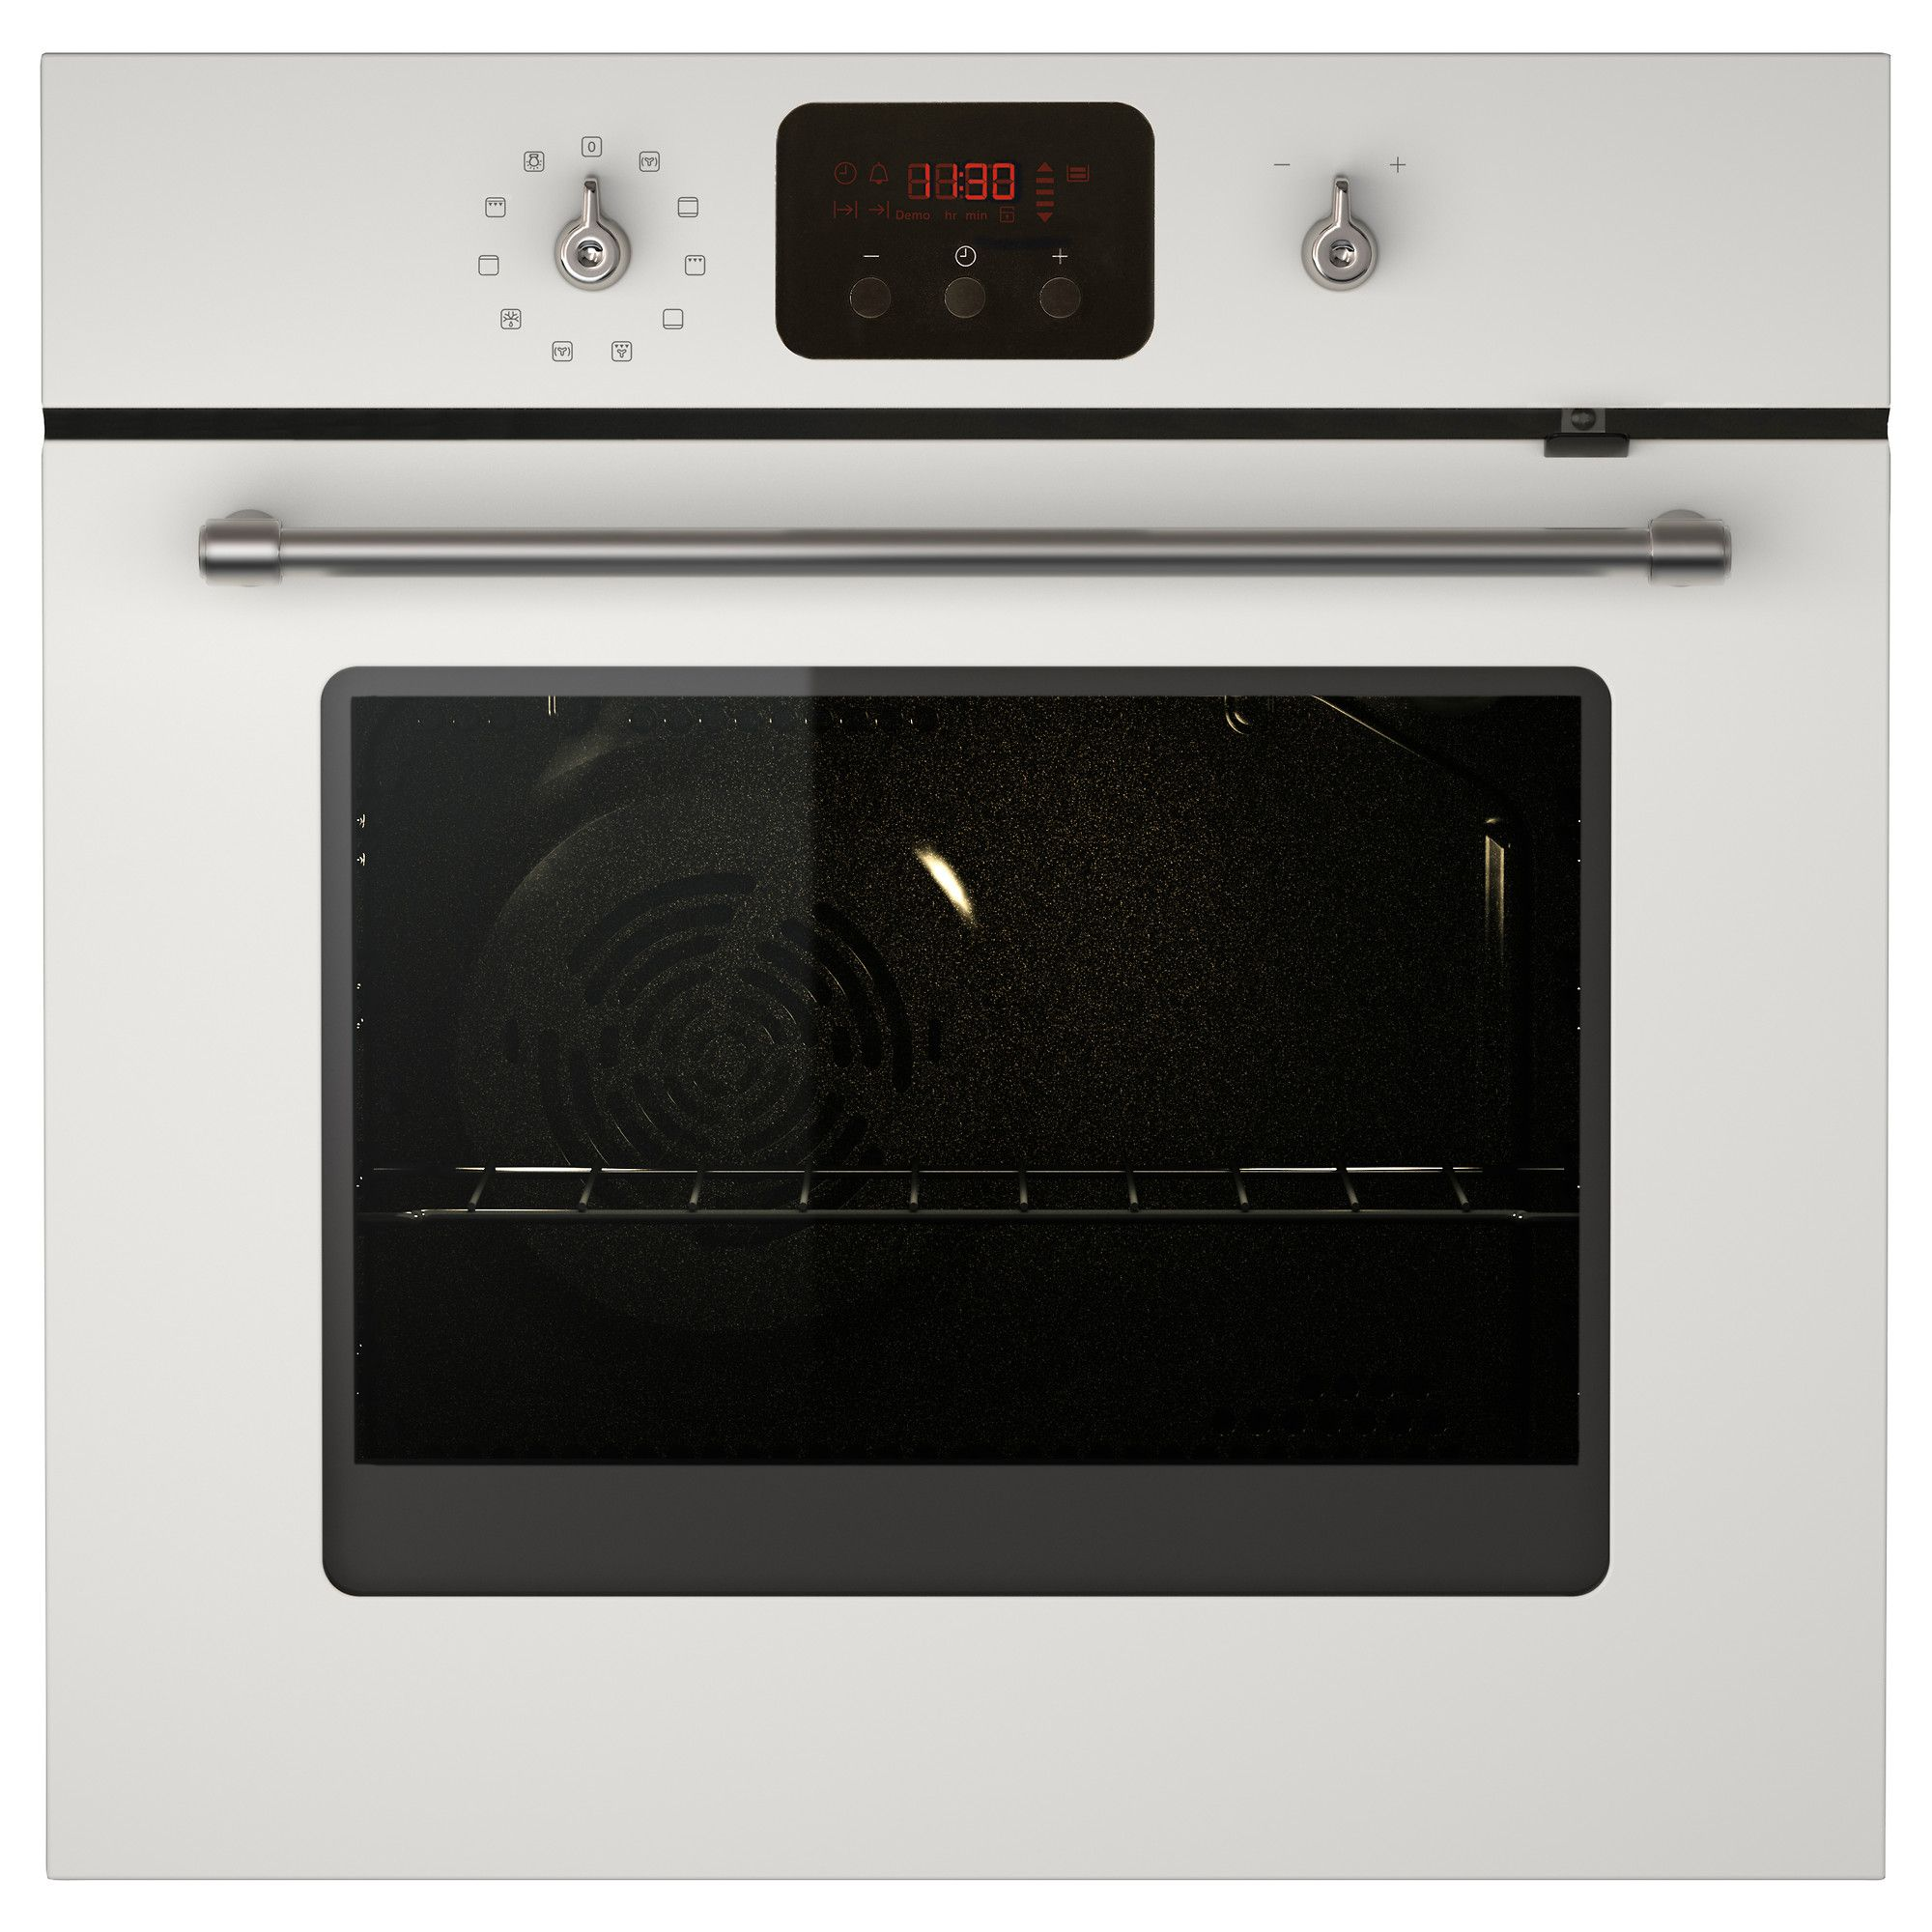 Shop for Furniture, Home Accessories & More Ikea ovens